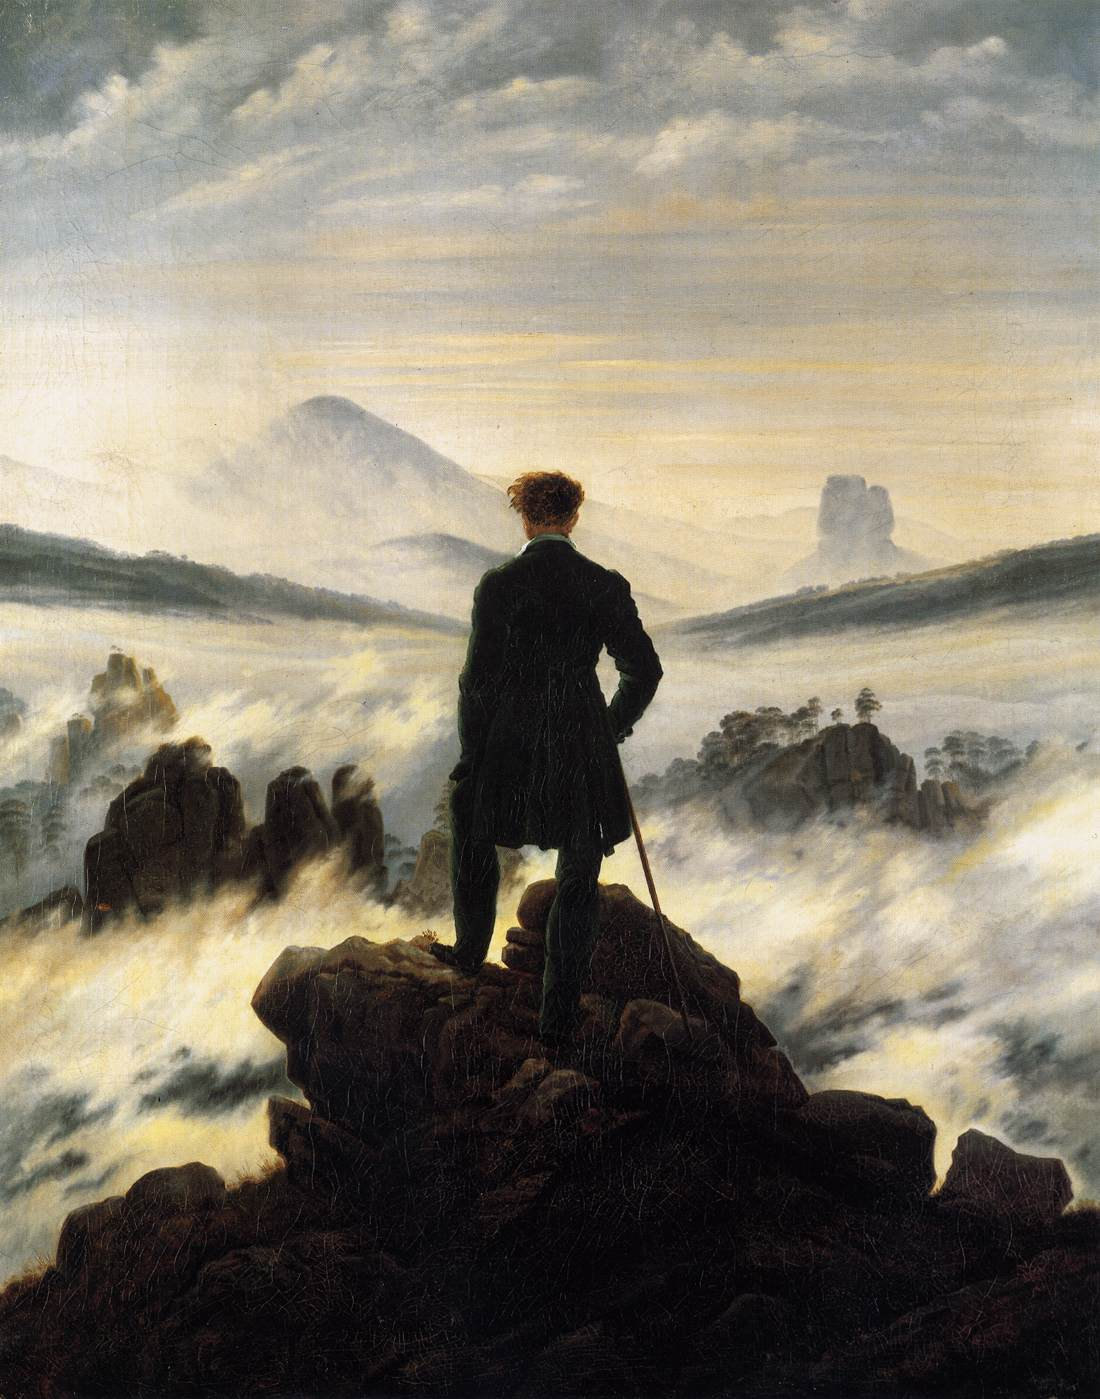 Title: The Wanderer above the Mists. Date: 1817-18. Medium: oil on canvas